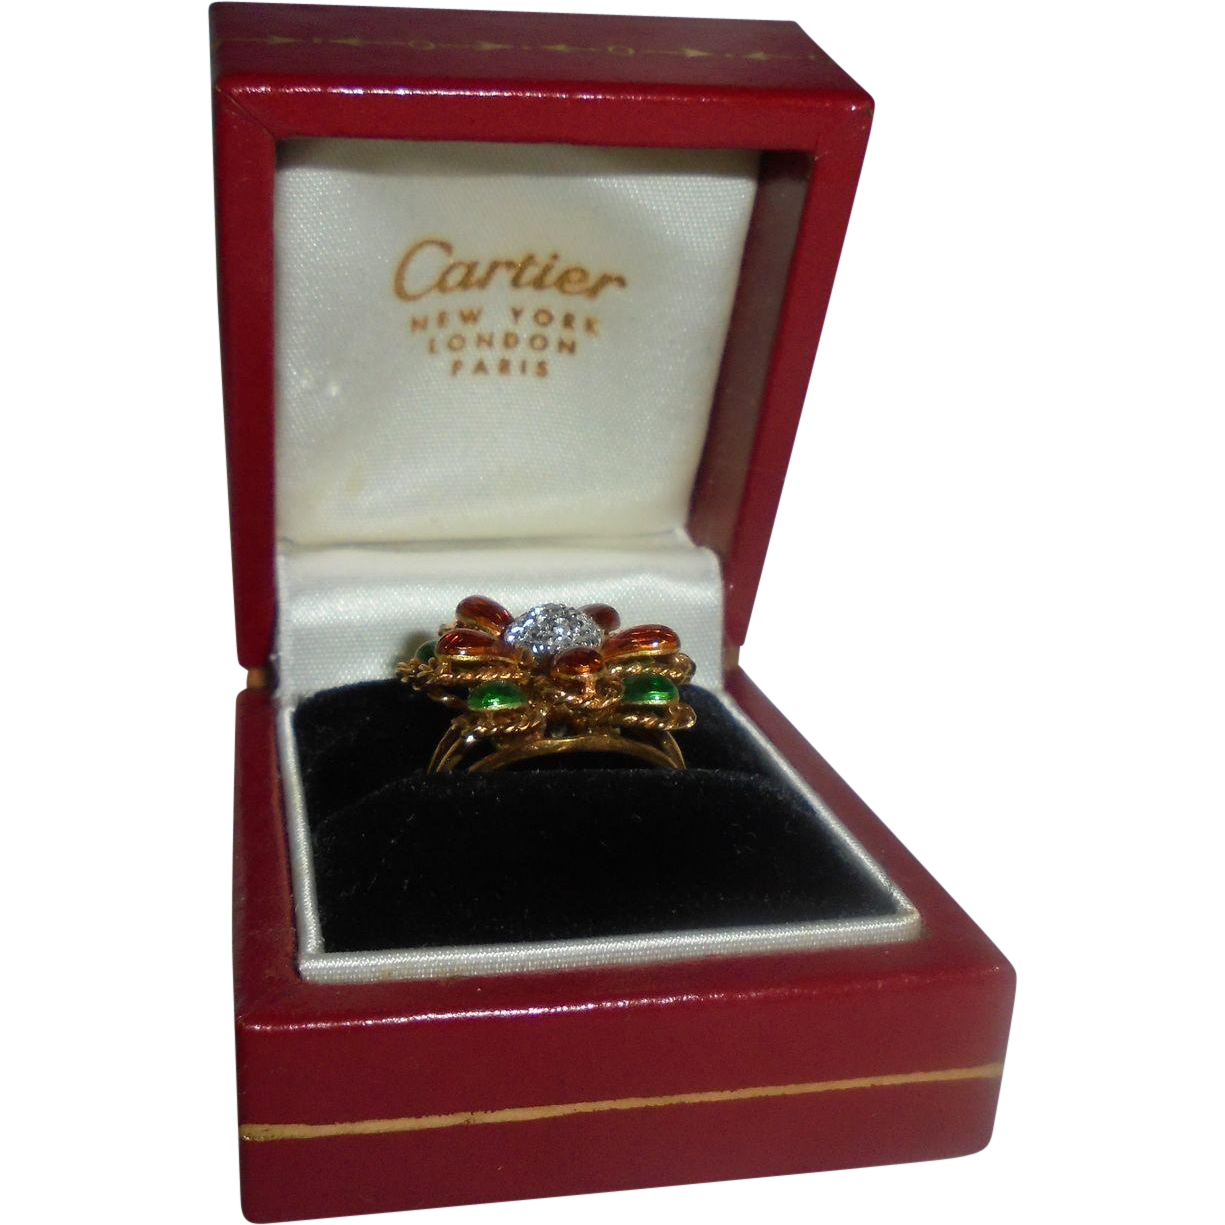 Cartier Exquiste 18K Yellow Gold Diamond & Enamel Ring Size 5.5 in Box